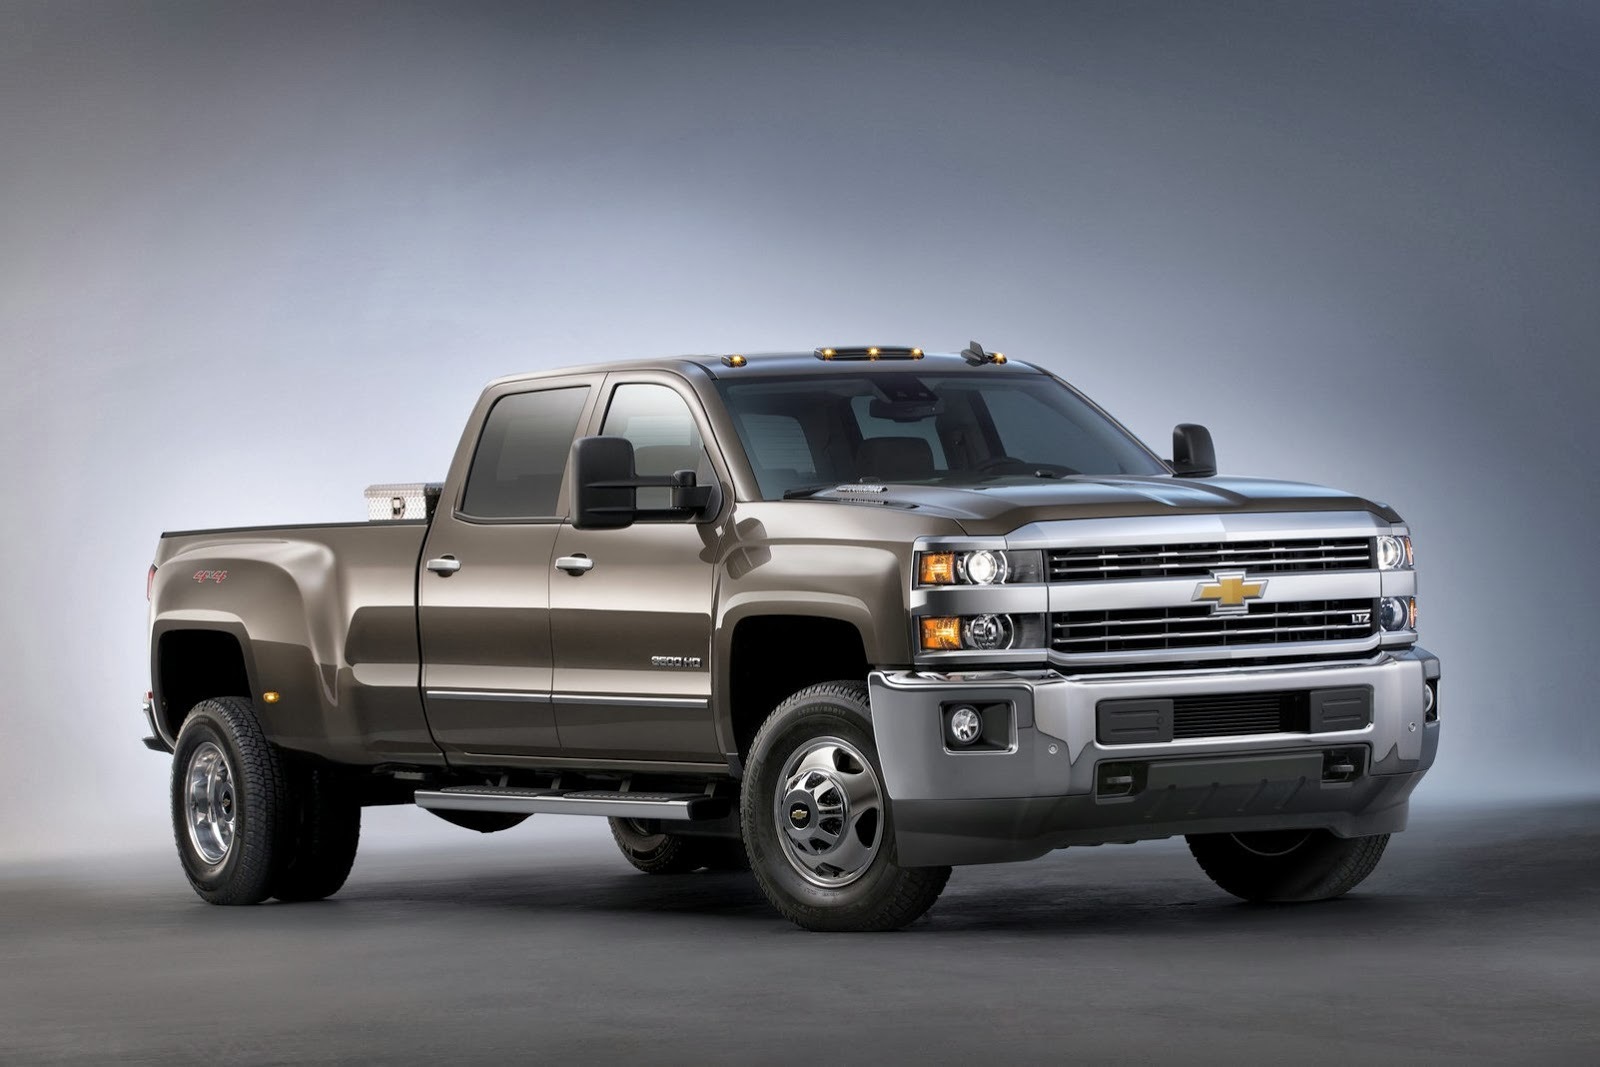 2015 chevrolet silverado hd revealed at texas state fair autoevolution. Black Bedroom Furniture Sets. Home Design Ideas